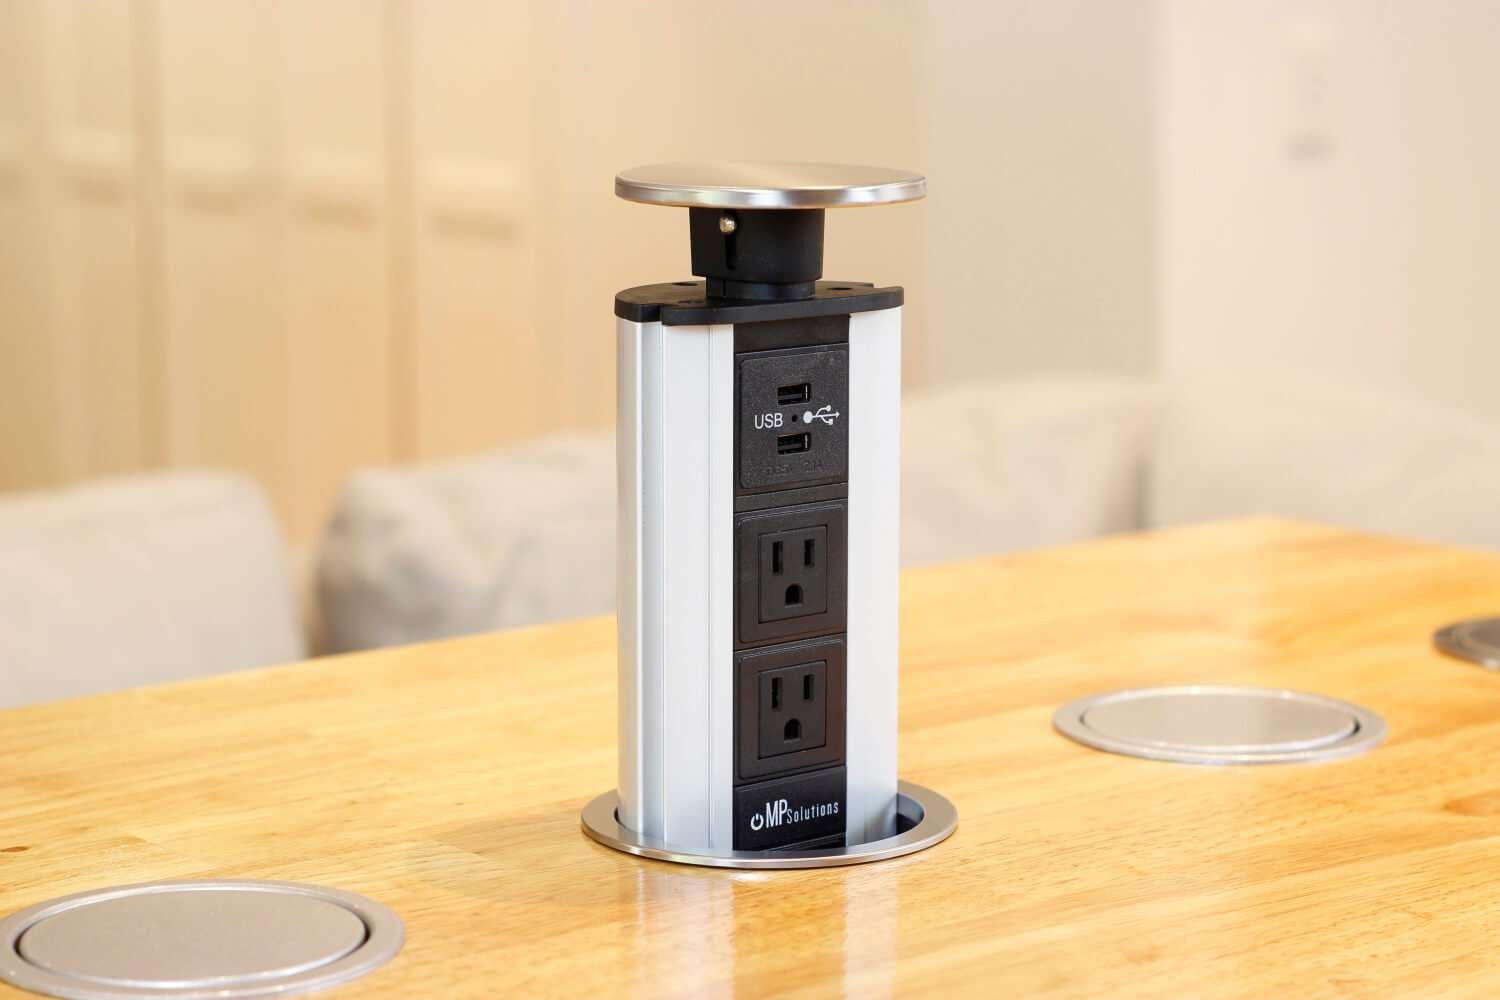 Stainless Steel Pop Up Power Socket (US)